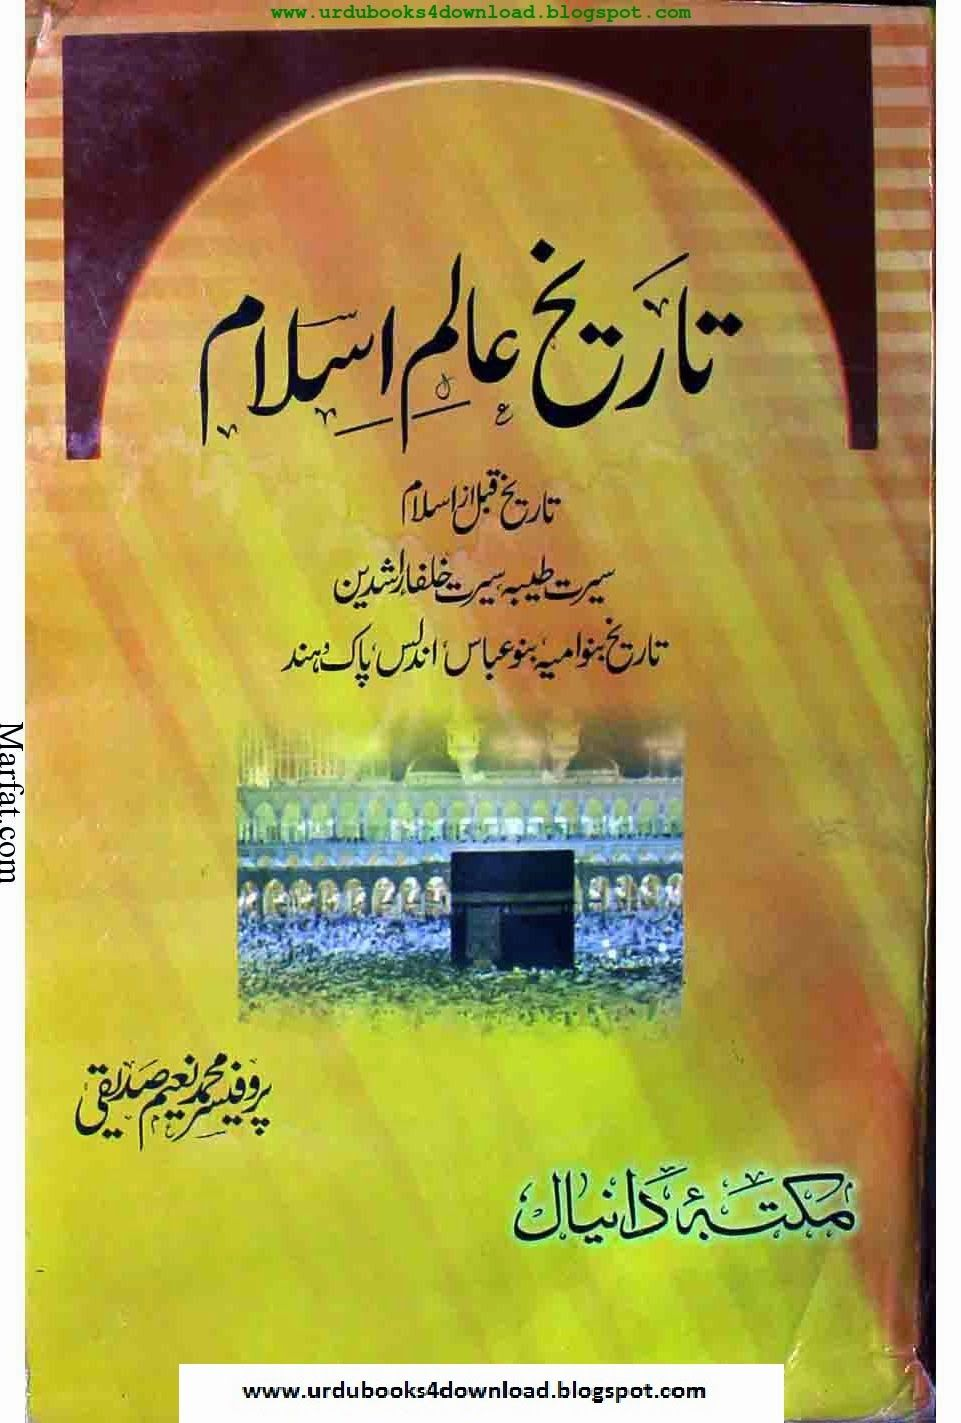 Urdu in e tareekh pdf books islam